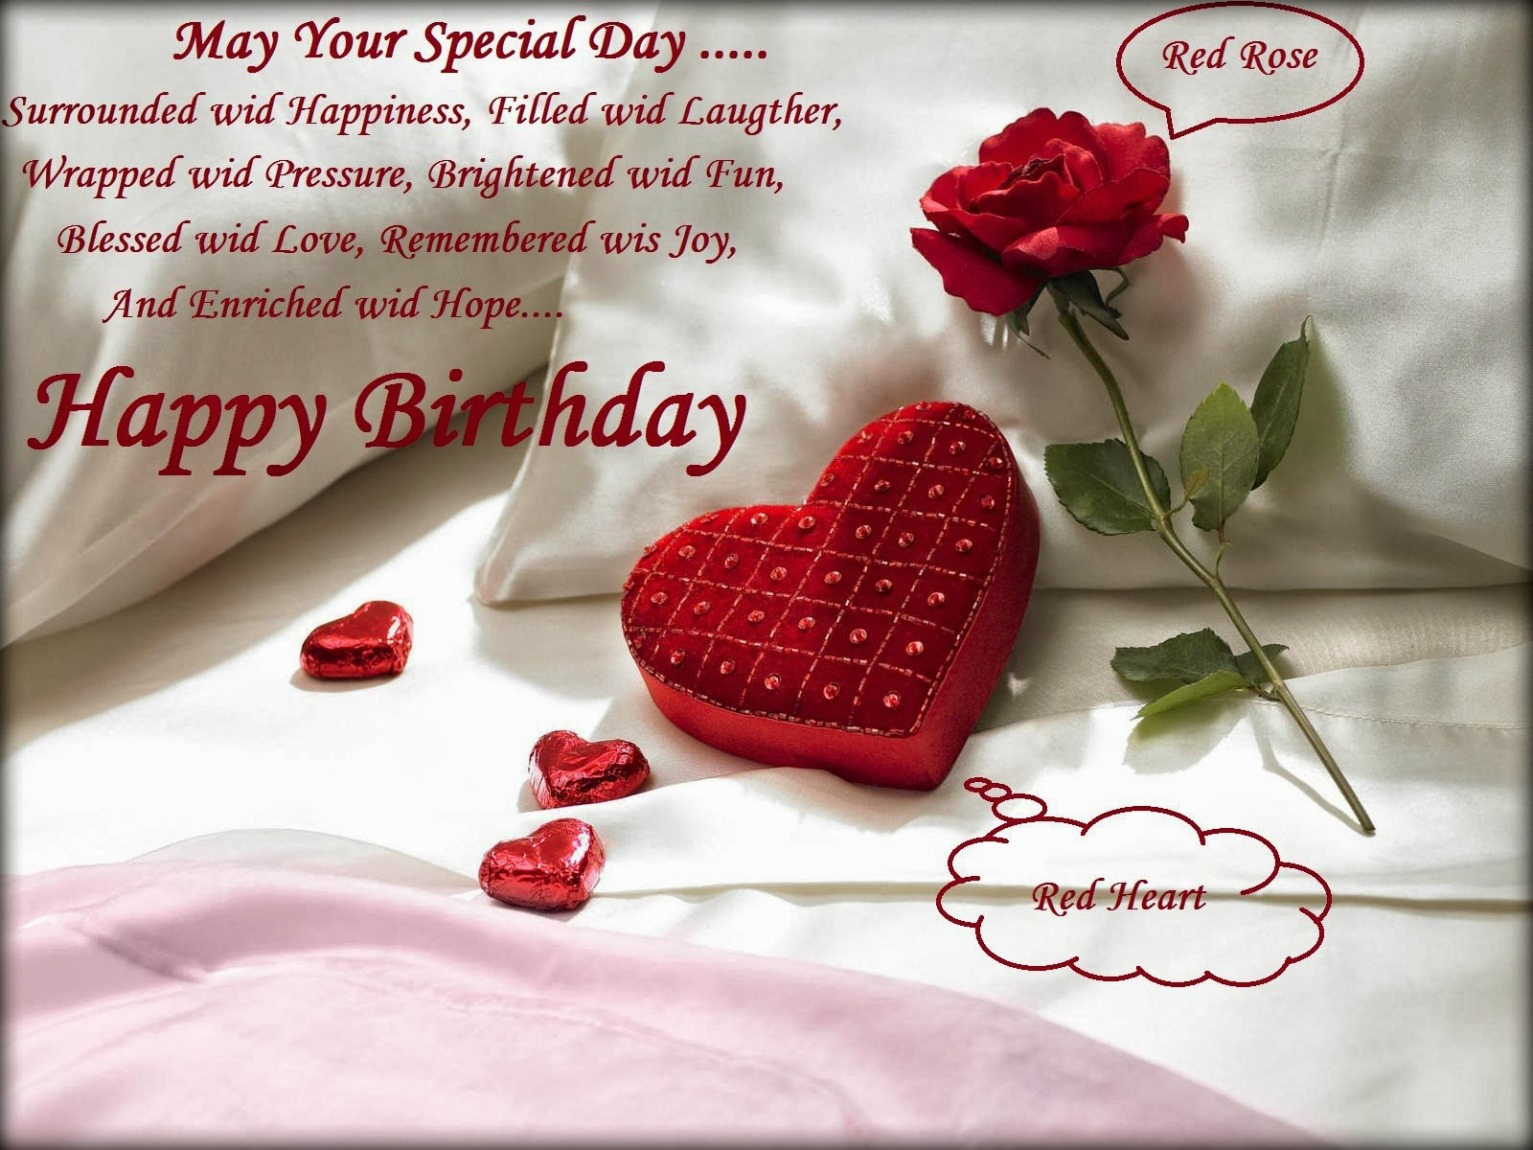 birthday wishes greeting card free download ; f4d743f4d612e7916019275364e3fd25